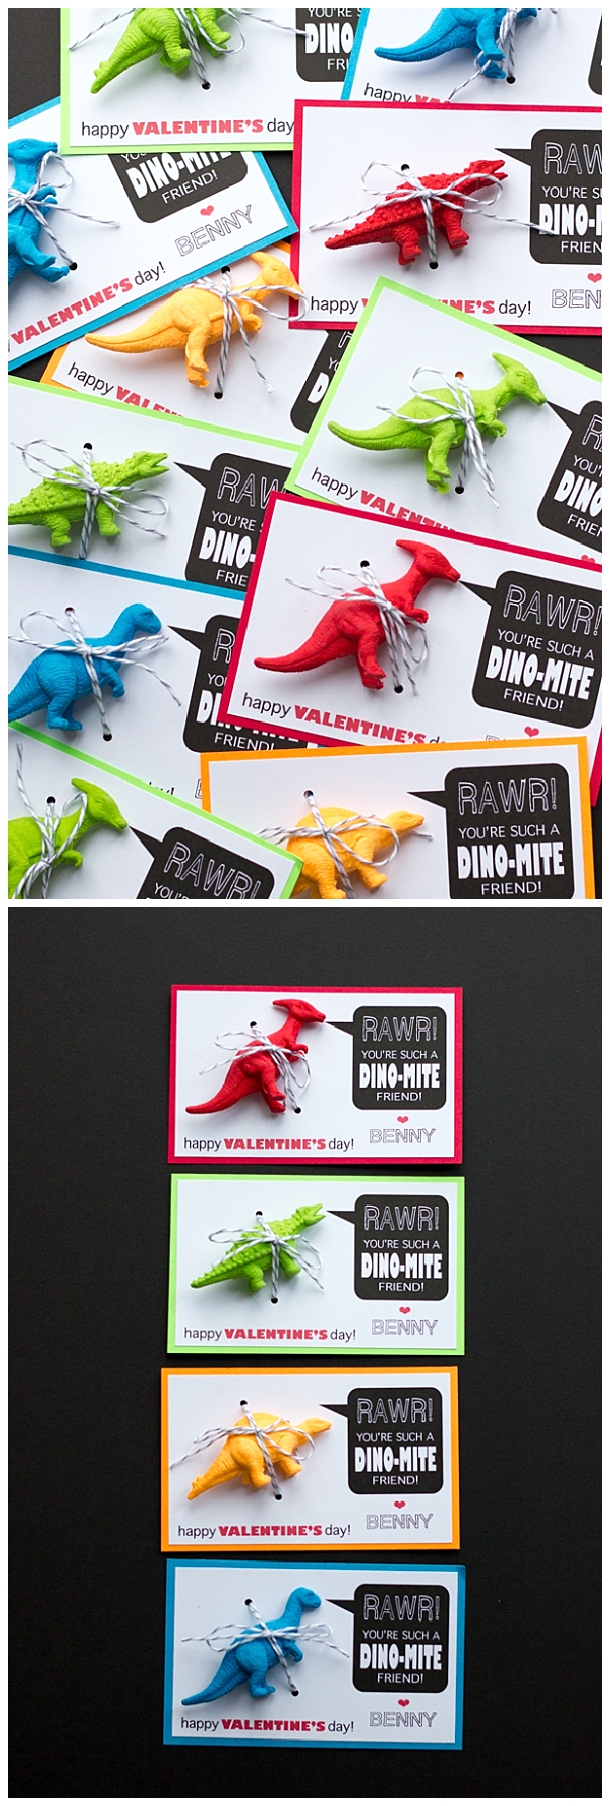 Dino-Mite Valentine FREE PRINTABLES to go with toy dinosaurs for kids classmates - perfect for boys OR girls!  | Hello Design, Meet Life #valentines #freeprintablevalentines #valentinesprintables #freevalentinesdaycards #valentinesdaypartyprintables #valentinesdayparty